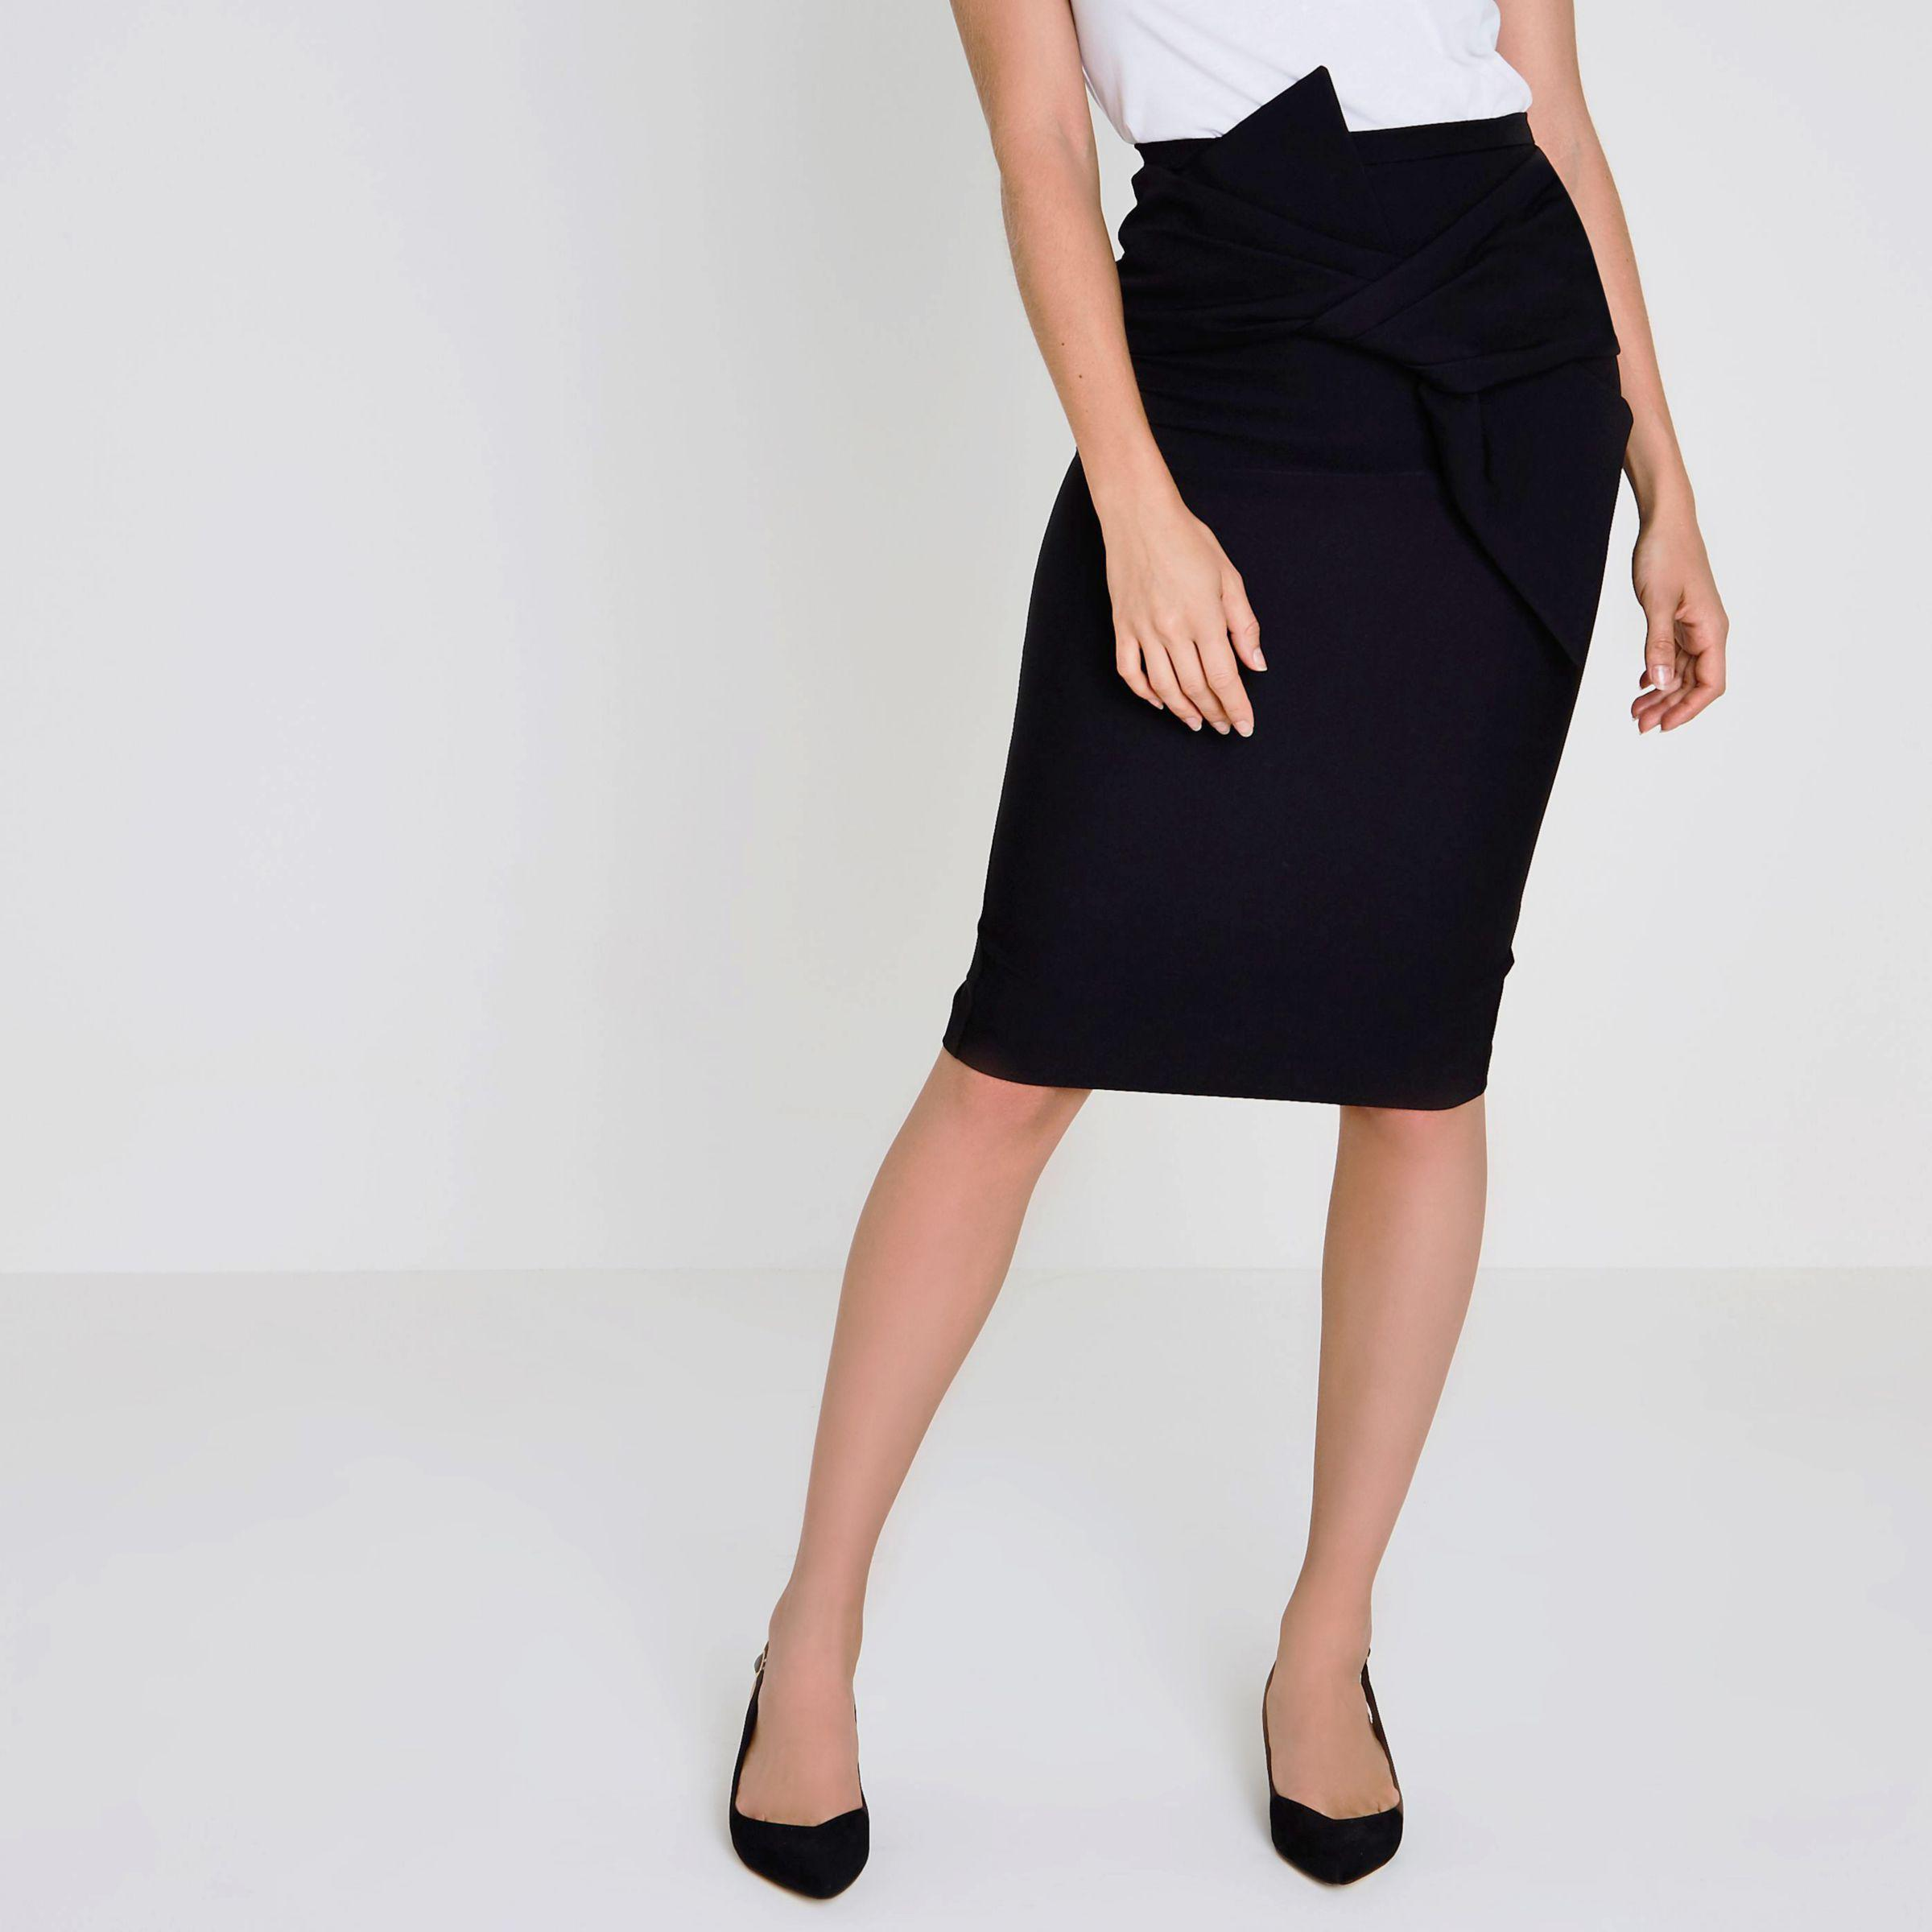 5c25daa97c River Island Black Bow Detail Pencil Skirt in Black - Lyst